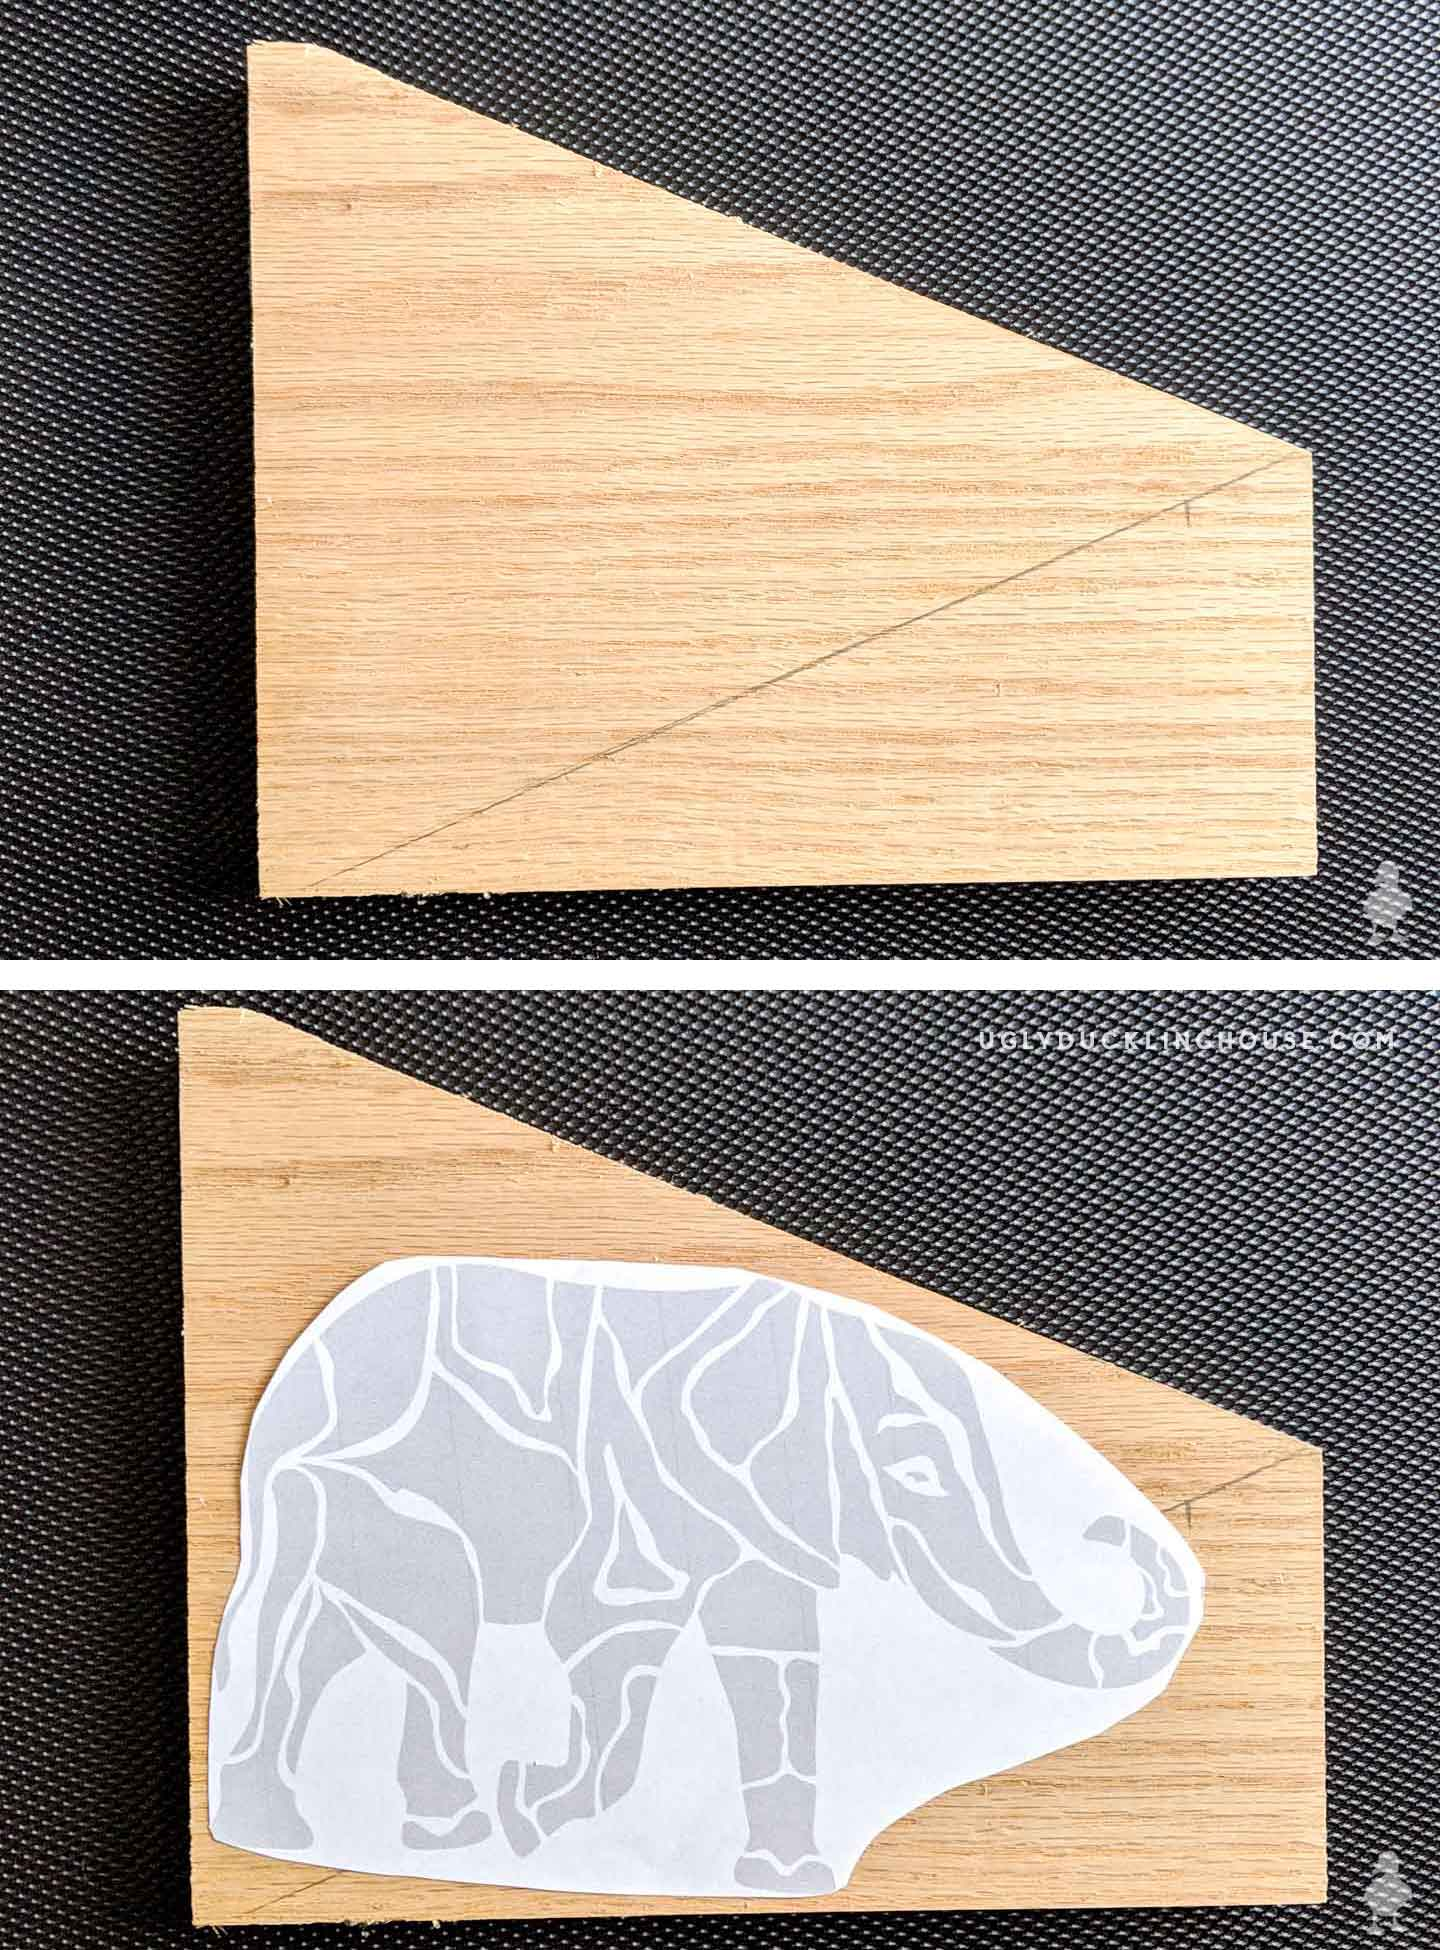 scrap wood and scroll saw image (sizing to fit)